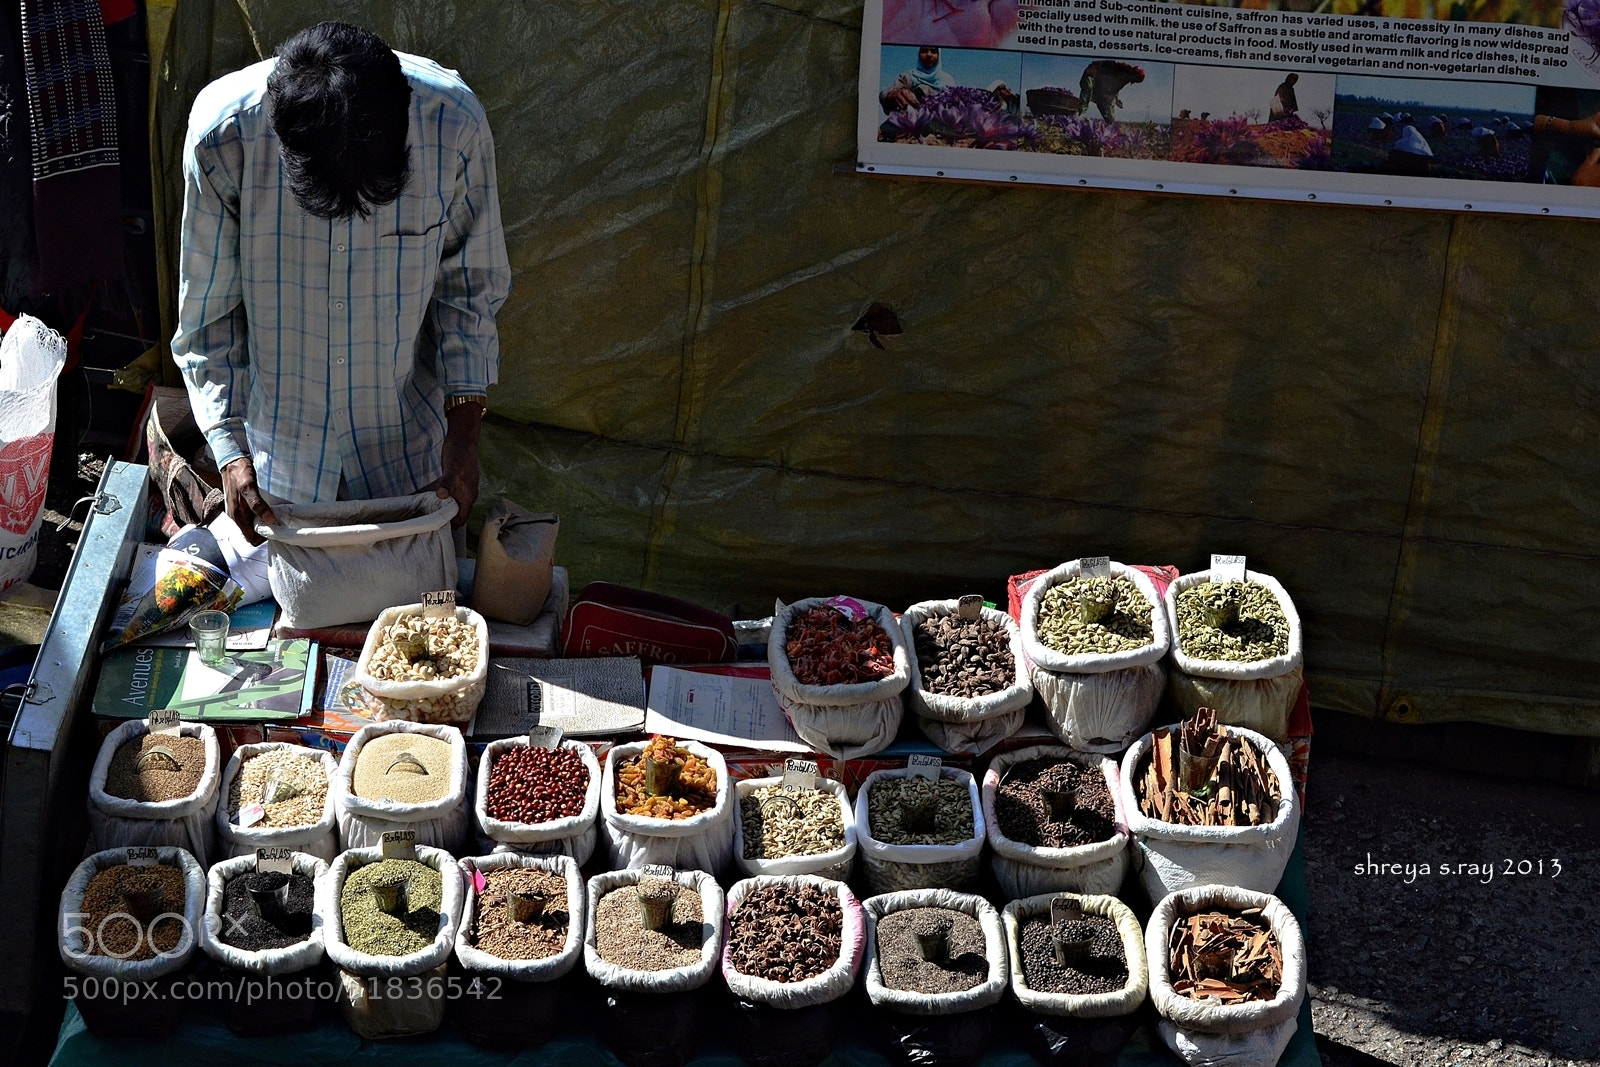 Photograph MASTER OF SPICES by Shreya Singha Ray on 500px